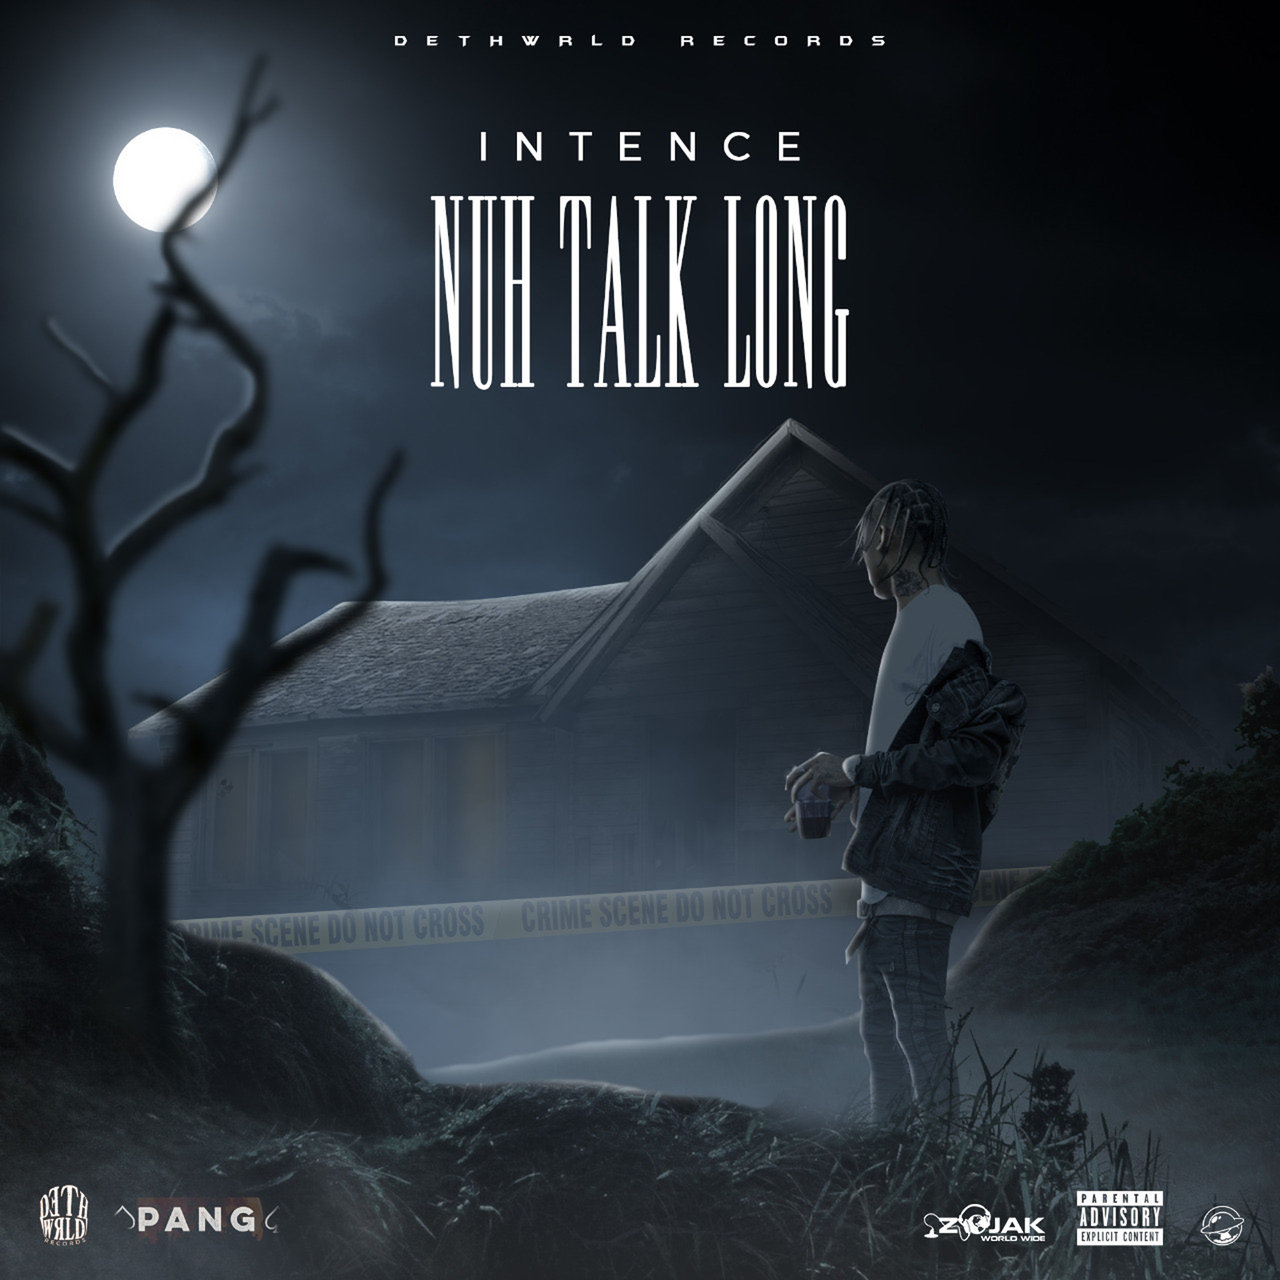 Intence - Nuh Talk Long (Cover)